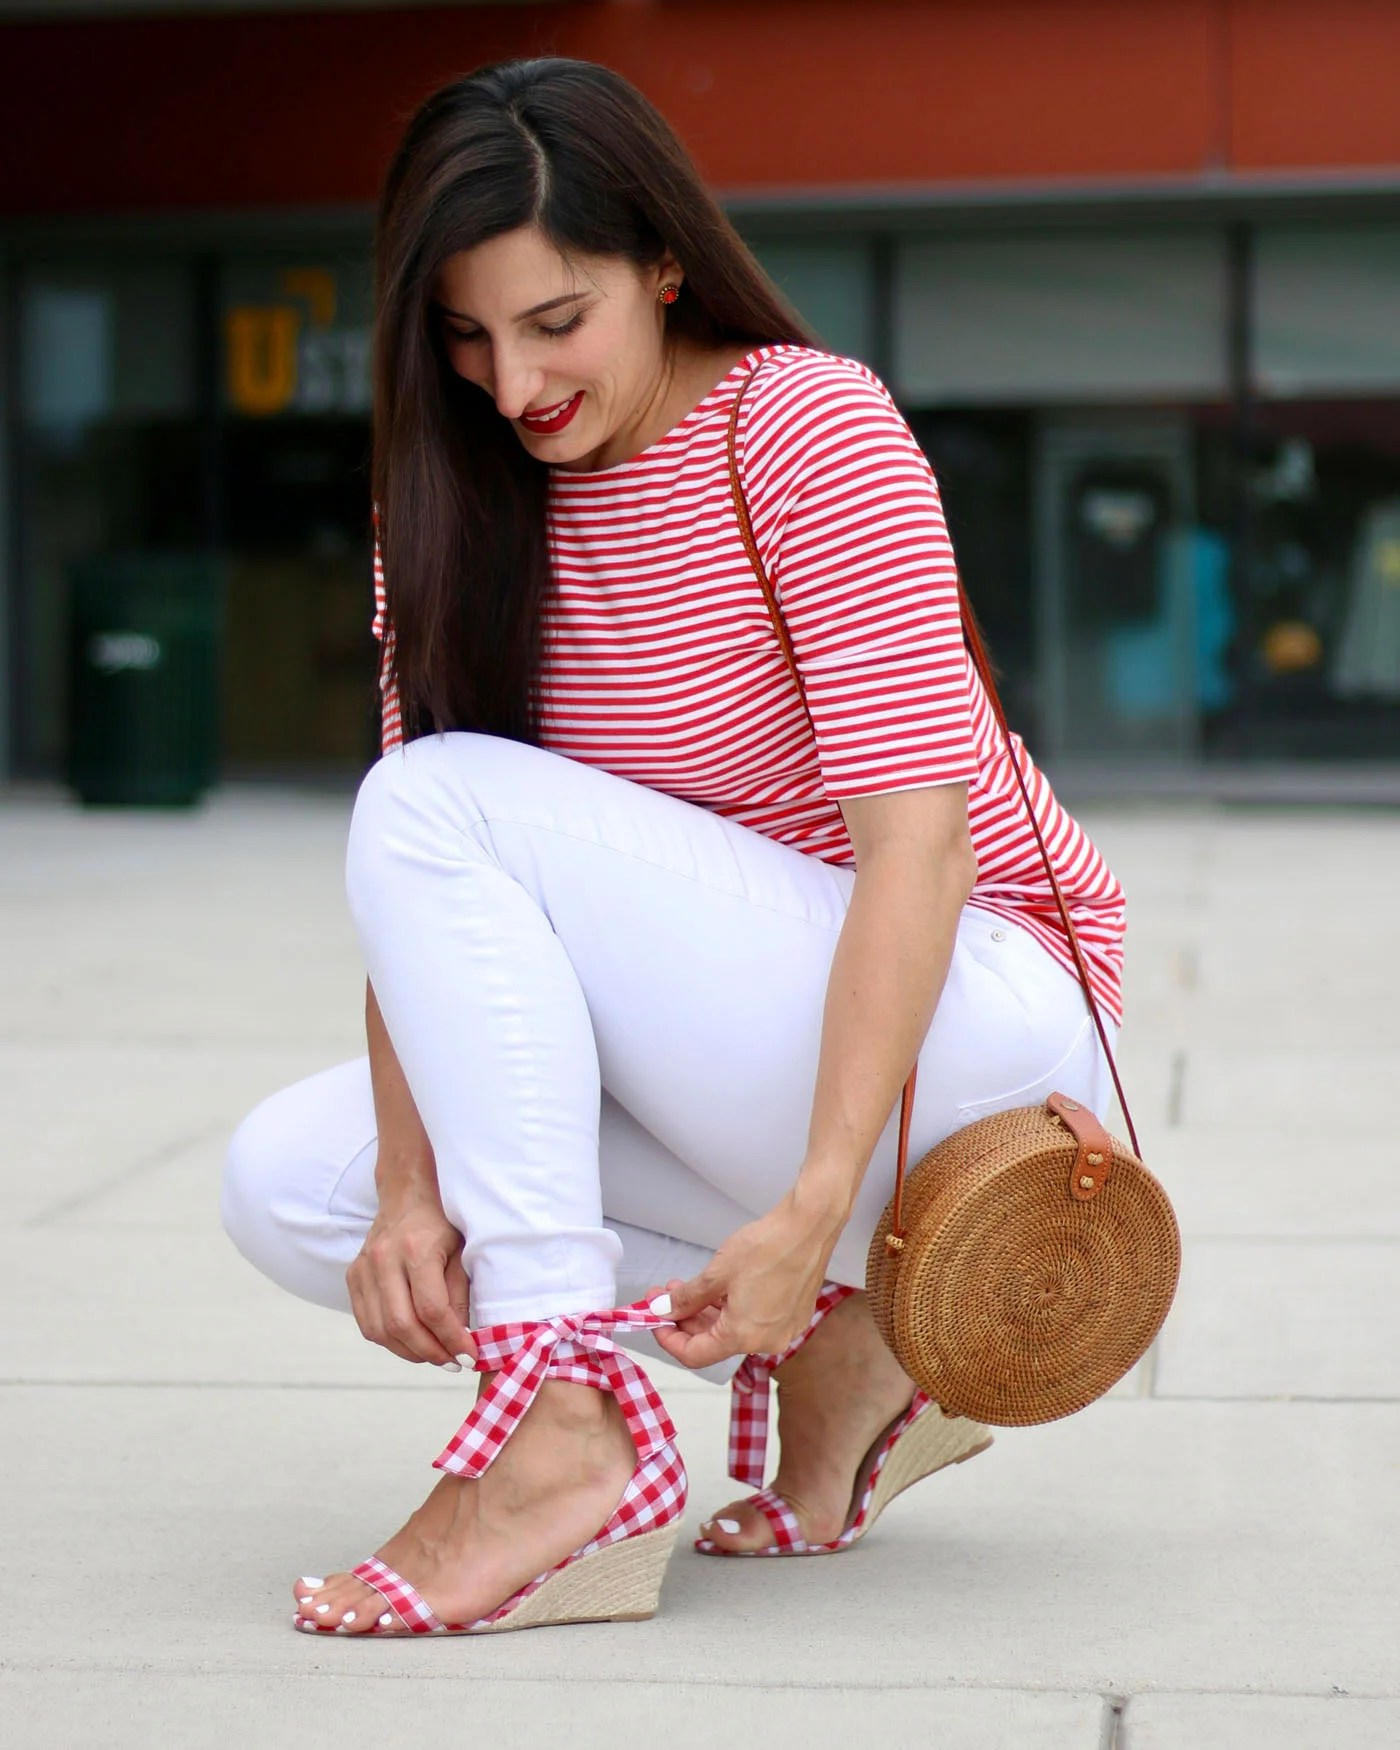 Betsey Johnson Red Gingham Sandals, Round Bamboo Bag